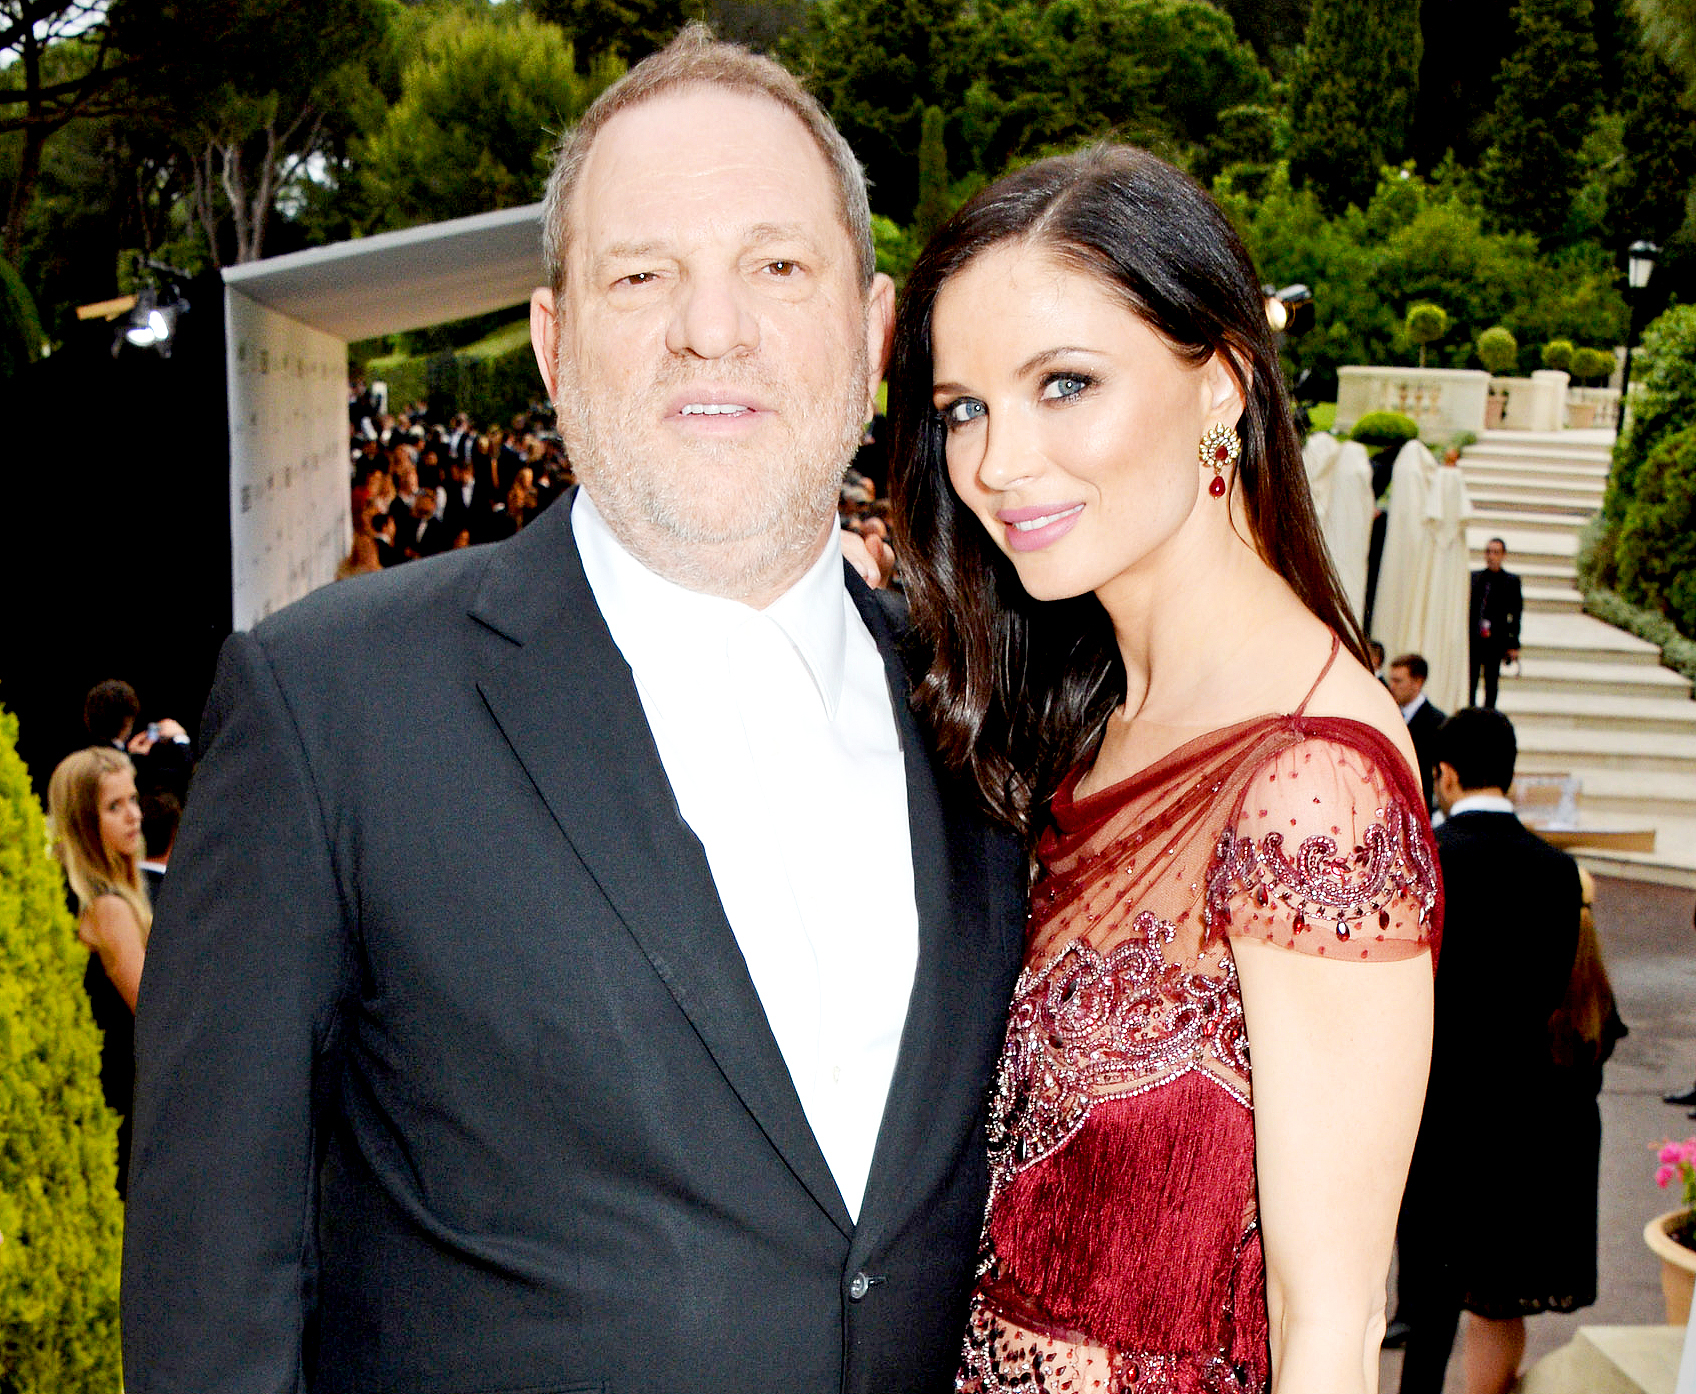 Harvey Weinstein and Georgina Chapman attend amfAR's 21st Cinema Against AIDS Gala presented by WORLDVIEW, BOLD FILMS, and BVLGARI at Hotel du Cap-Eden-Roc on May 22, 2014 in Cap d'Antibes, France.